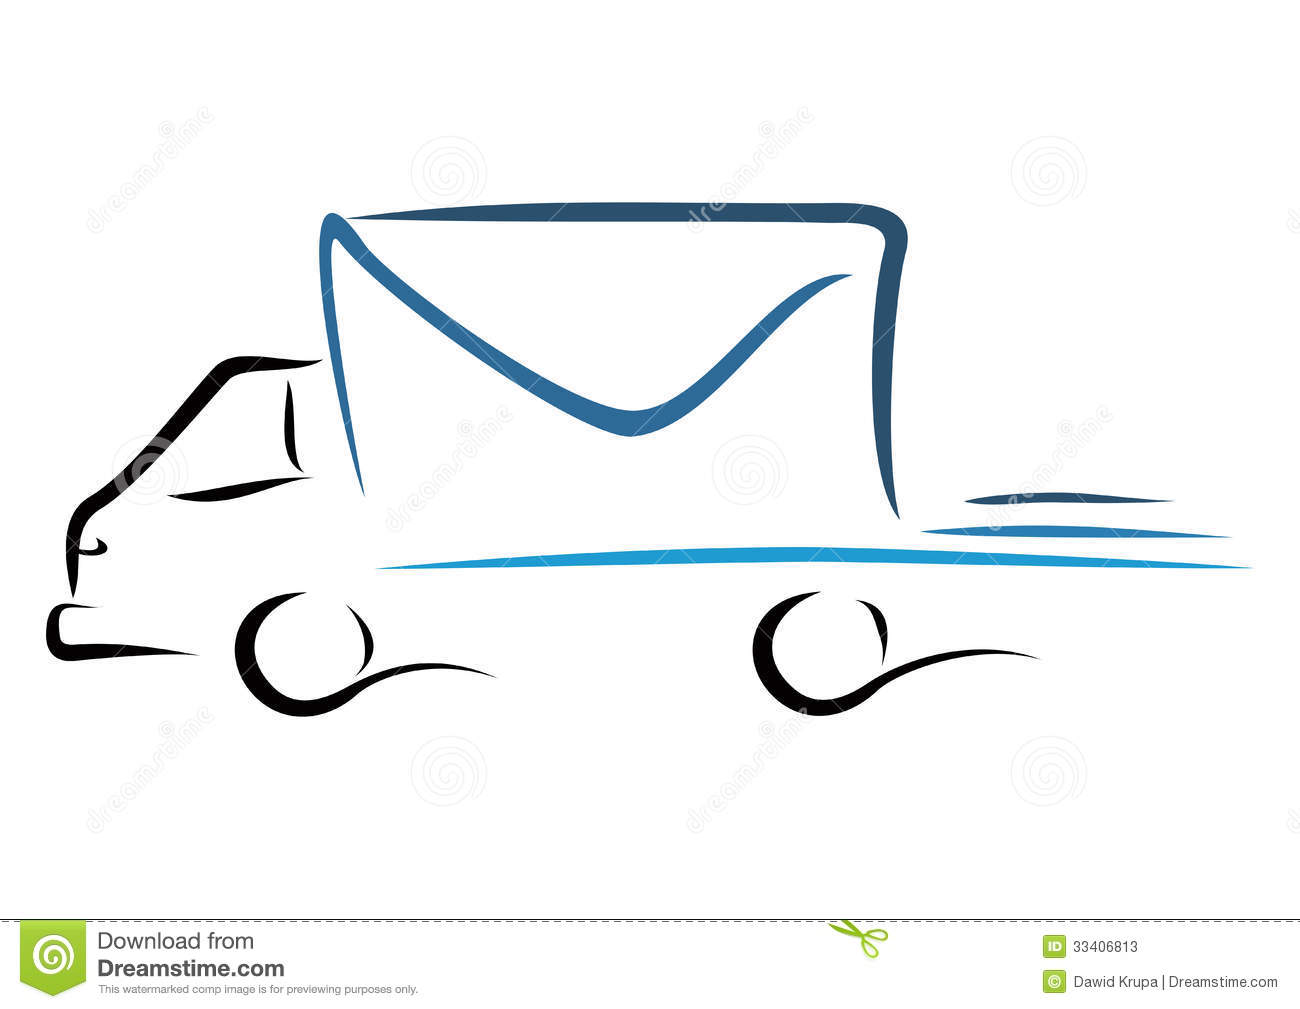 Dump Clipart in addition Orange Living Room Couch Into A Blue Moving Truck Symbolizing Teamwork O Zxcw Clipart additionally Cargo Transport Clipart furthermore Clipart Moving Truck as well Delivery Clipart Loading Truck. on unloading truck cliparts